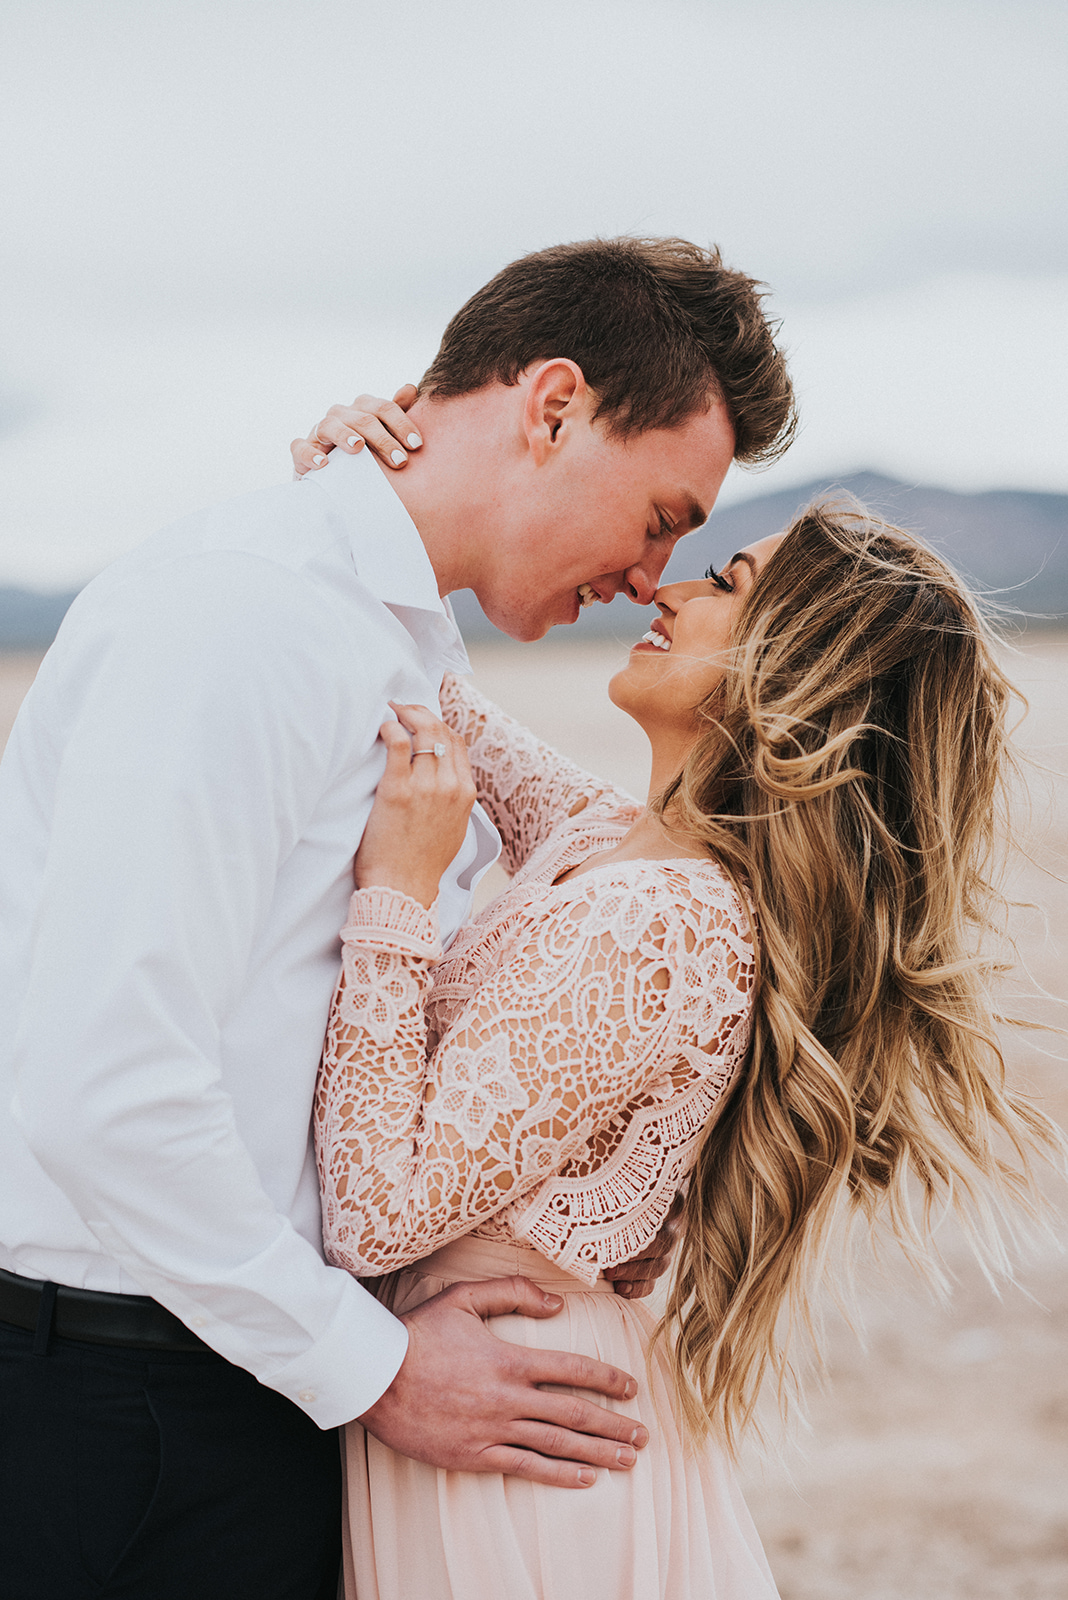 Spencer + Macaily Engagement Shoot - Dry Lake Bed Las Vegas, NV